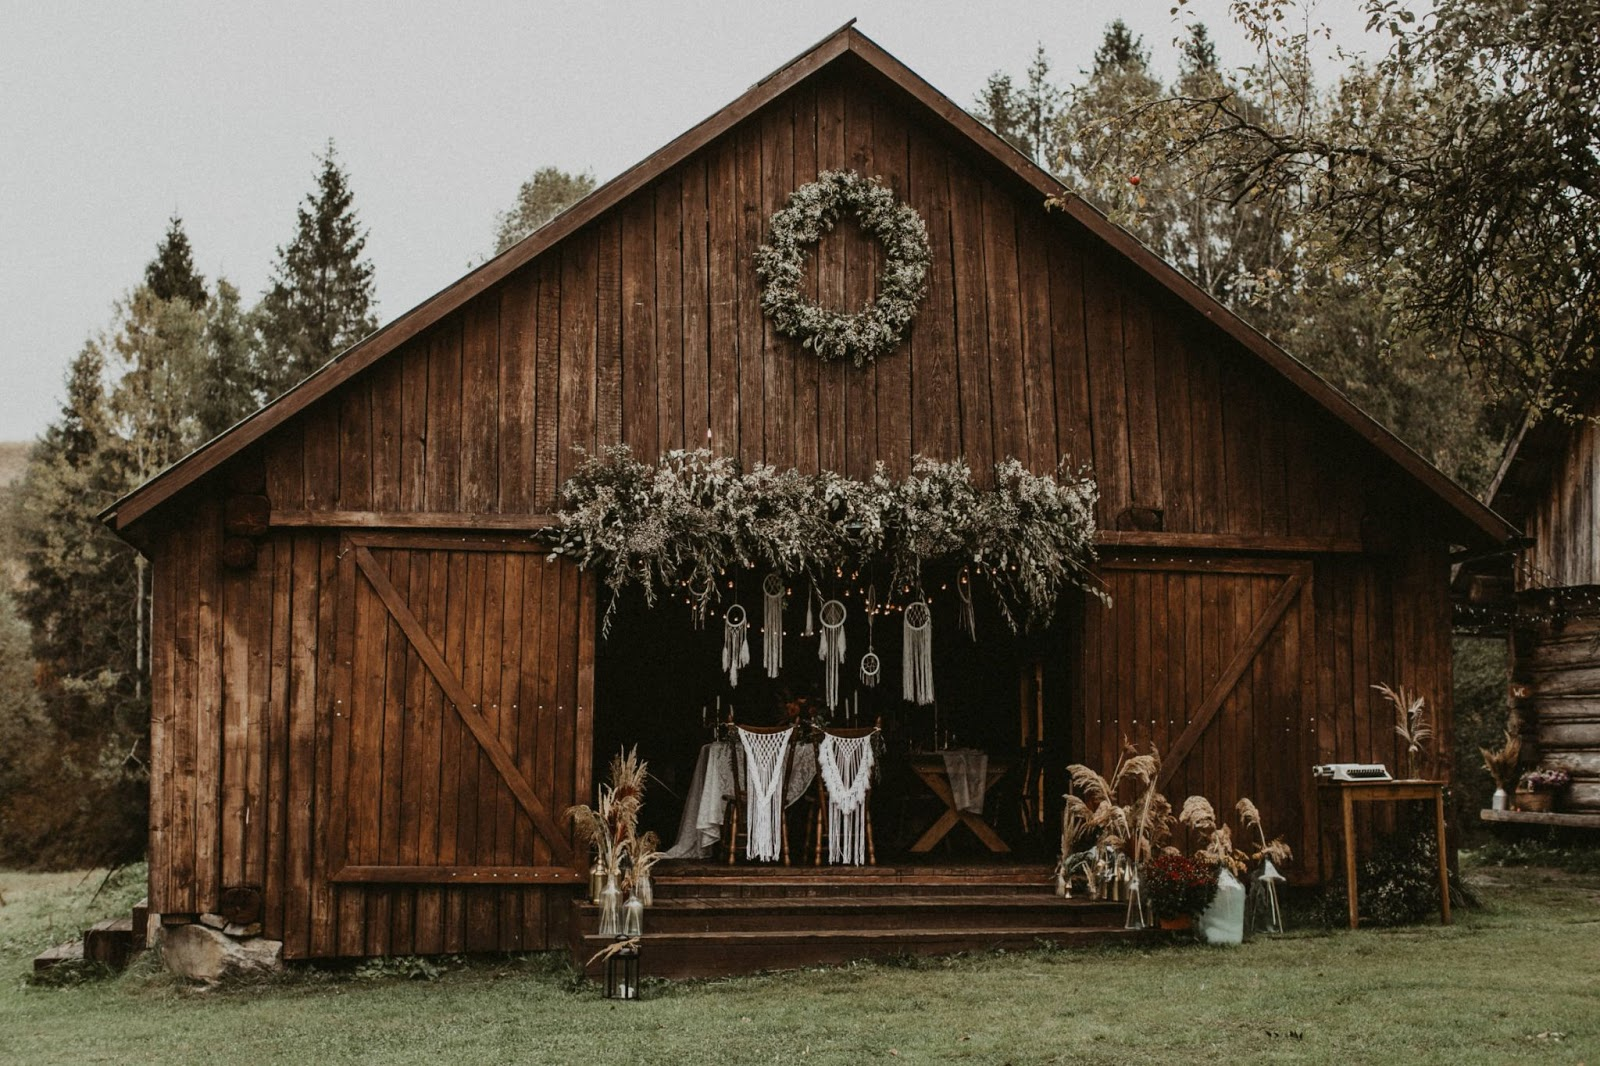 A rustic barn decorated for a wedding.